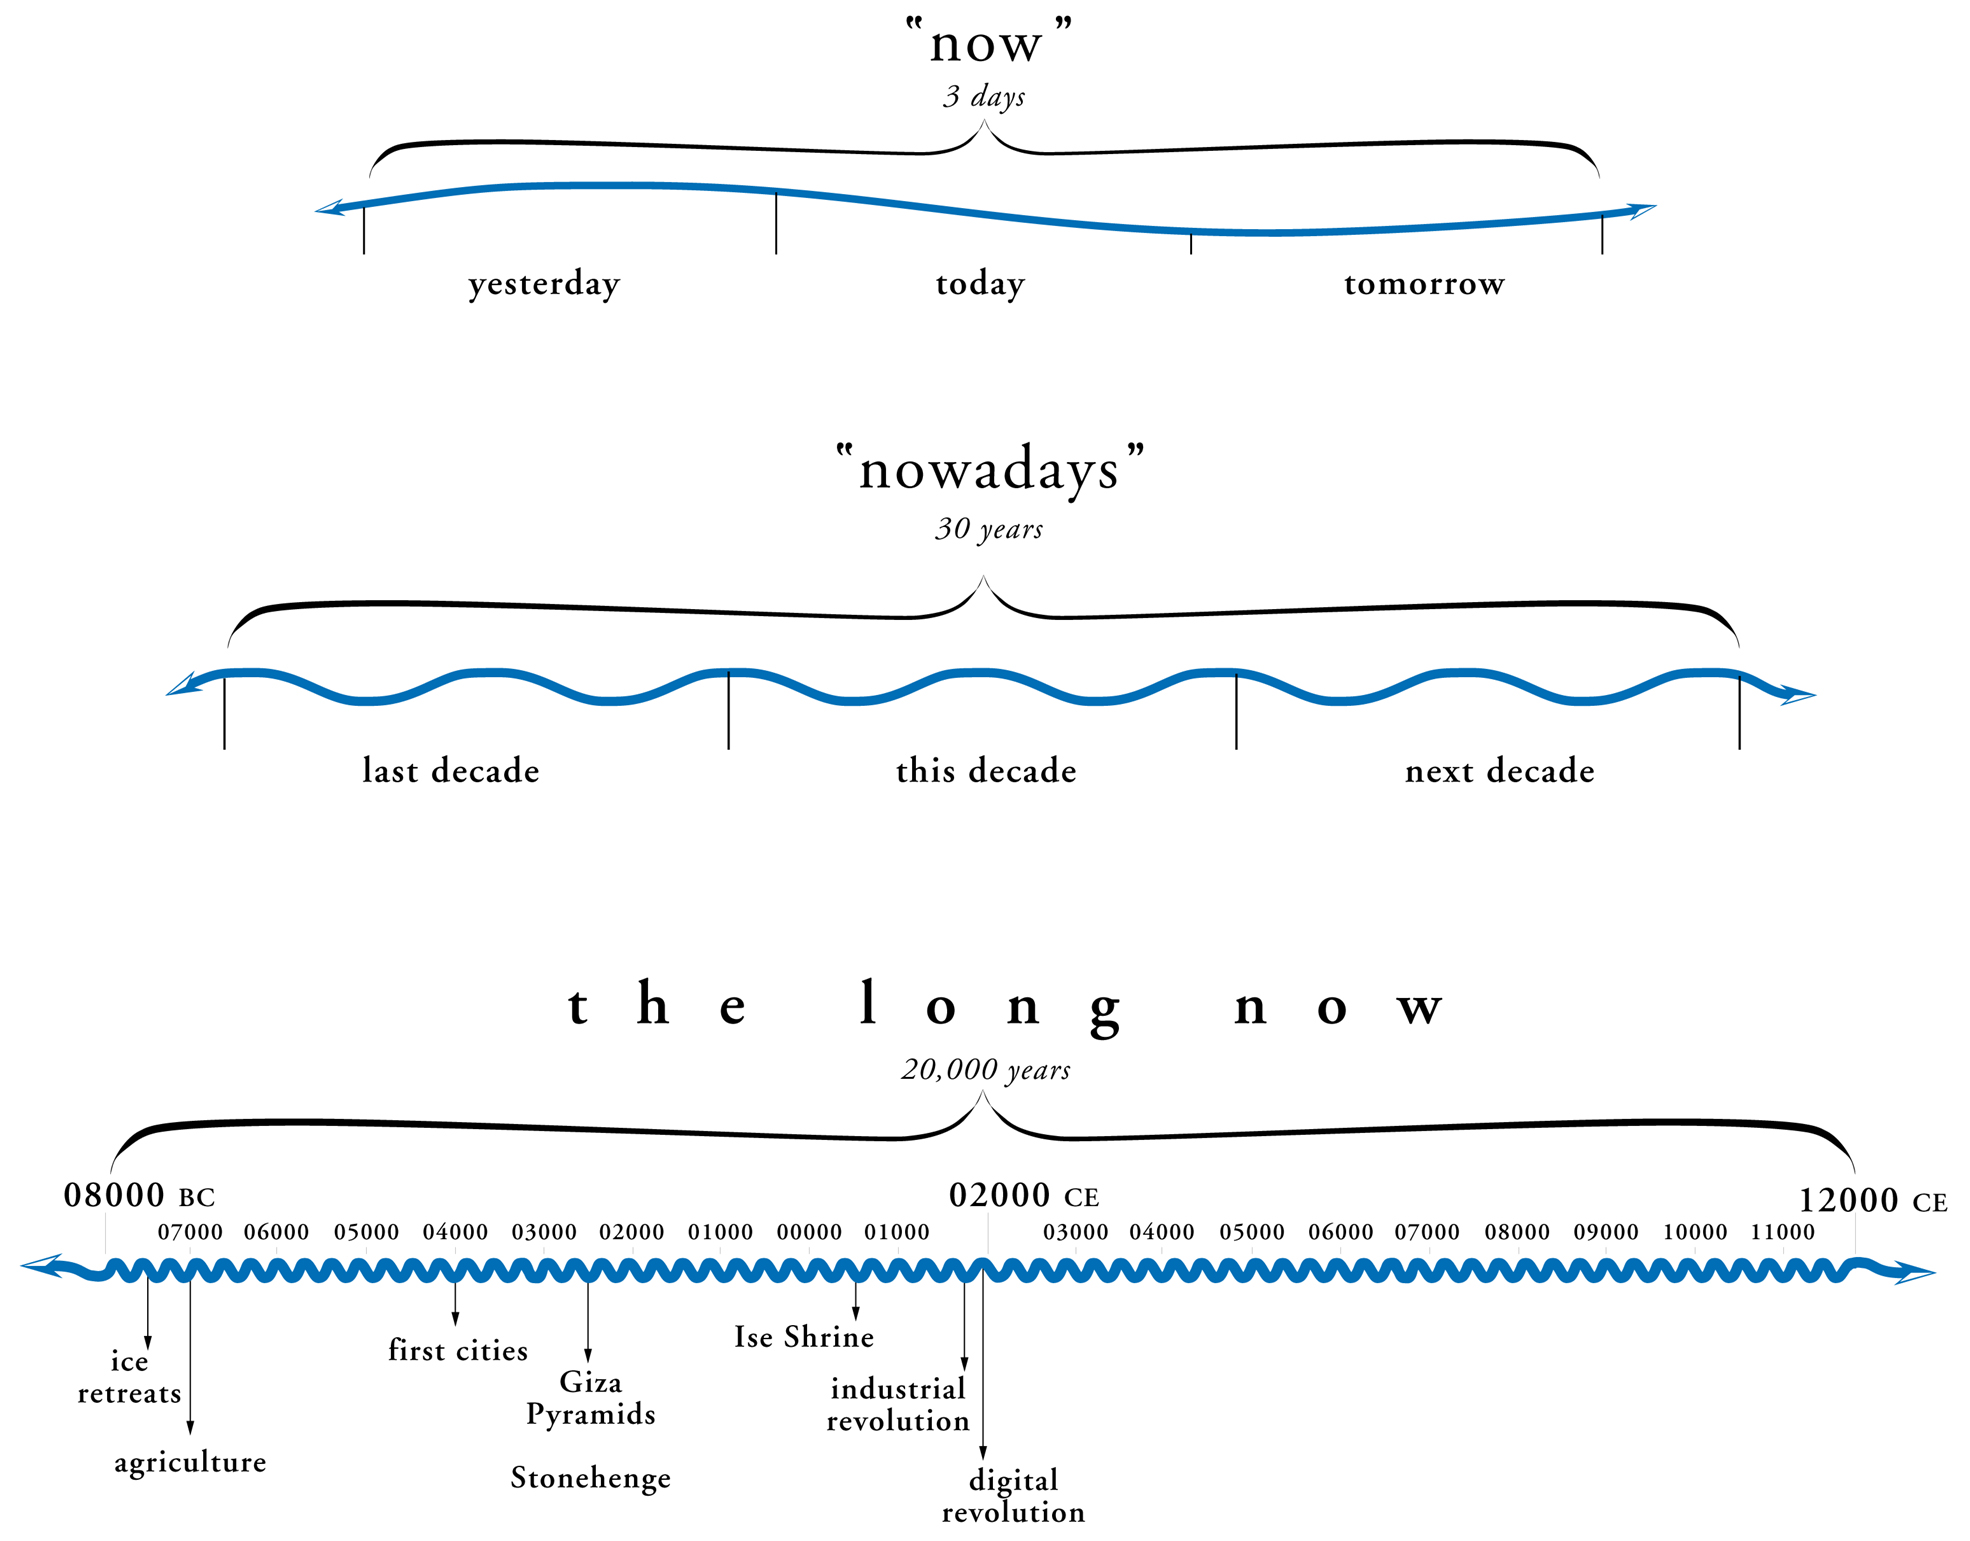 The  LongNow project  focuses on the next 10,000 years of human history.